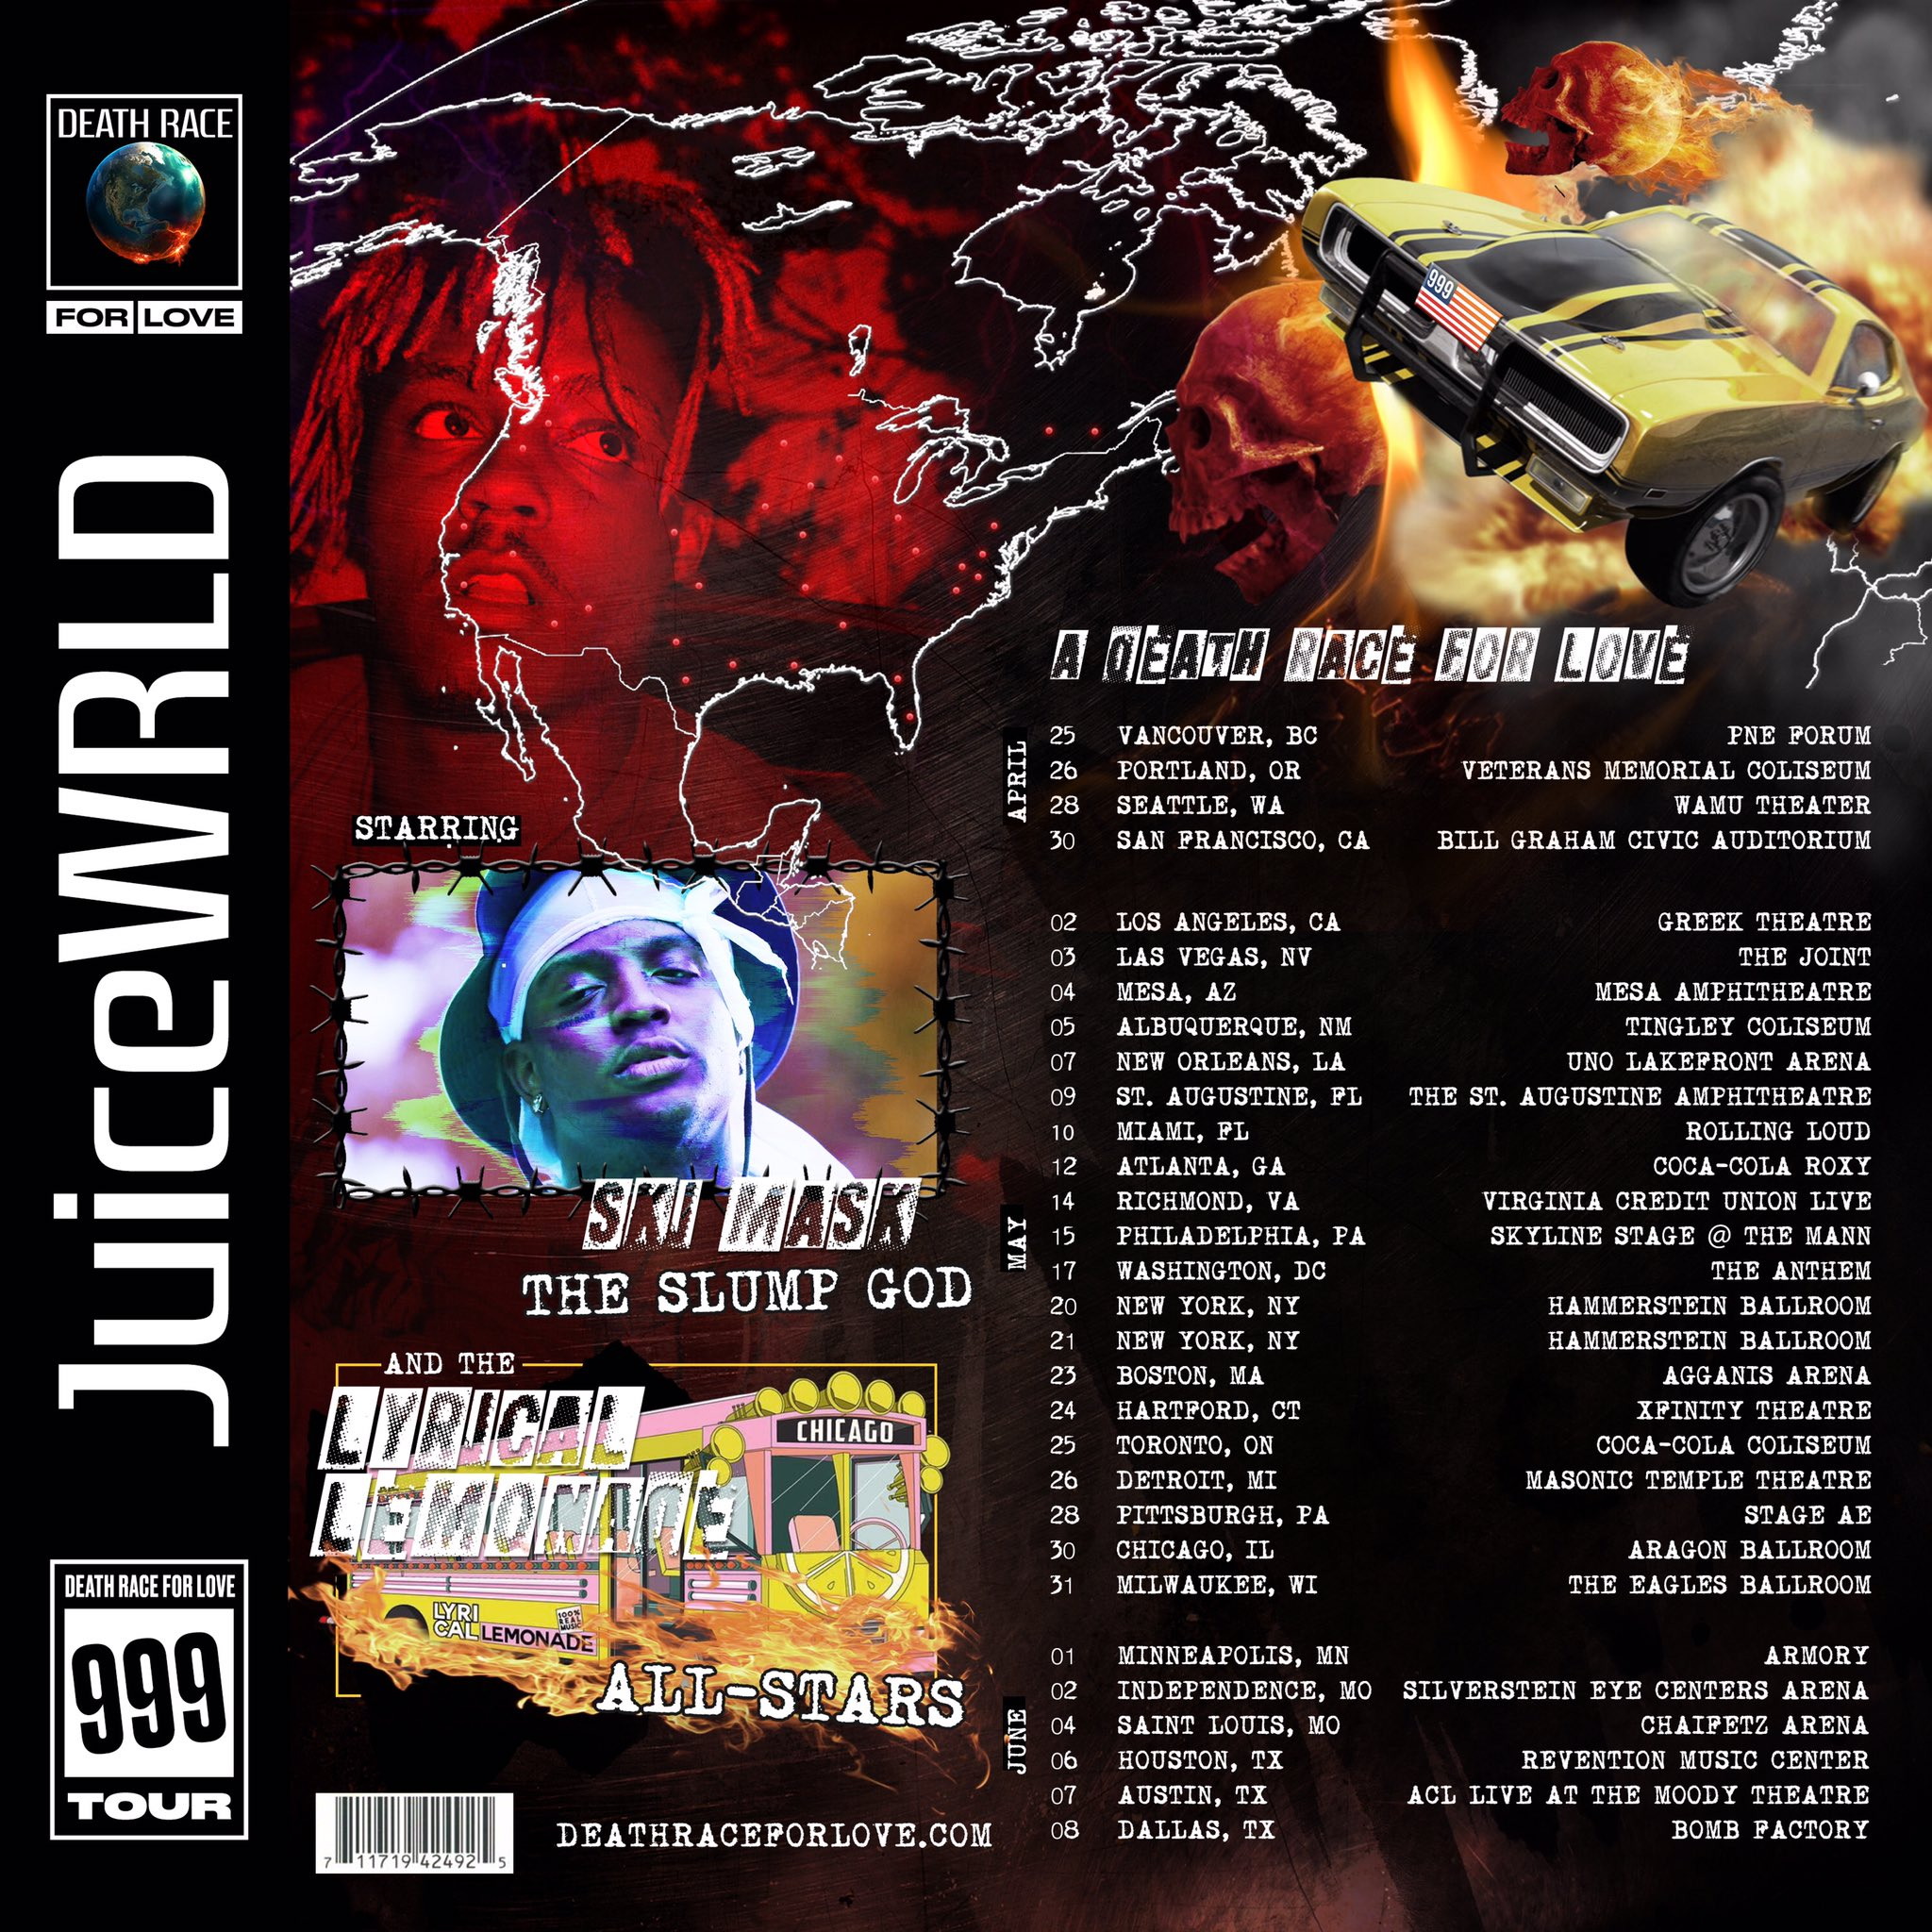 Juice WRLD - Twitter Tweet - Tour time, Are you ready